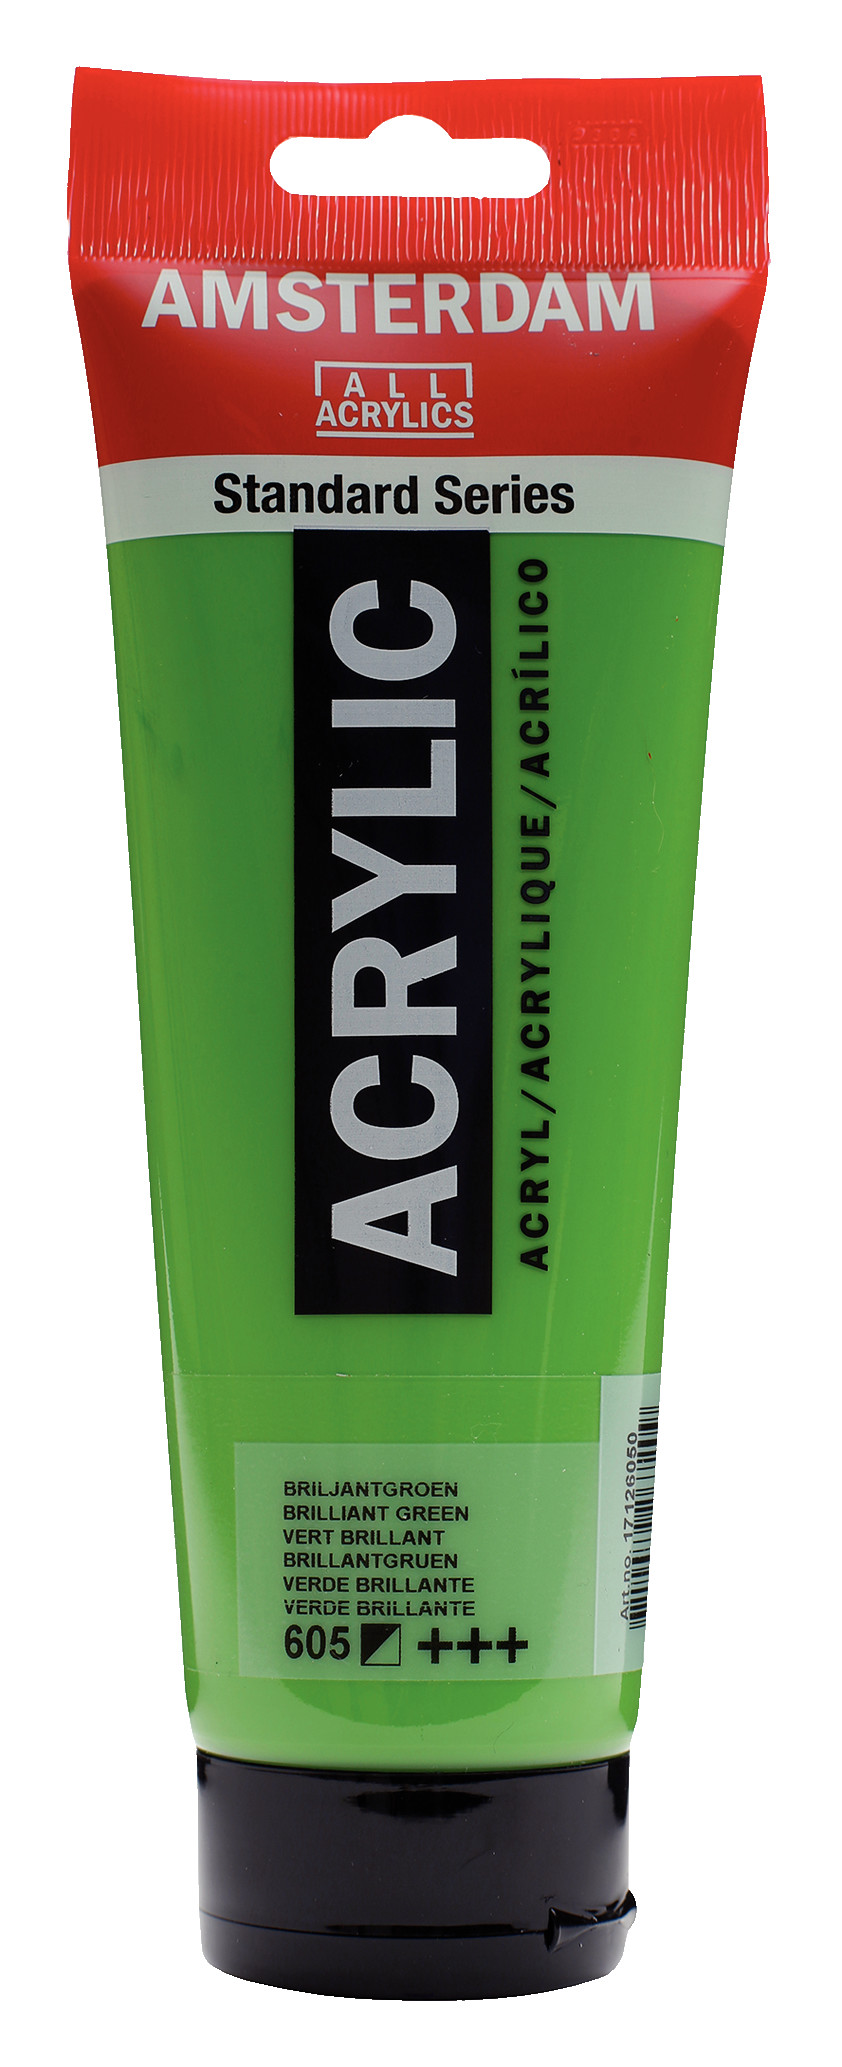 Amsterdam Standard Series Acrylic Tube 250 ml Brilliant Green 605